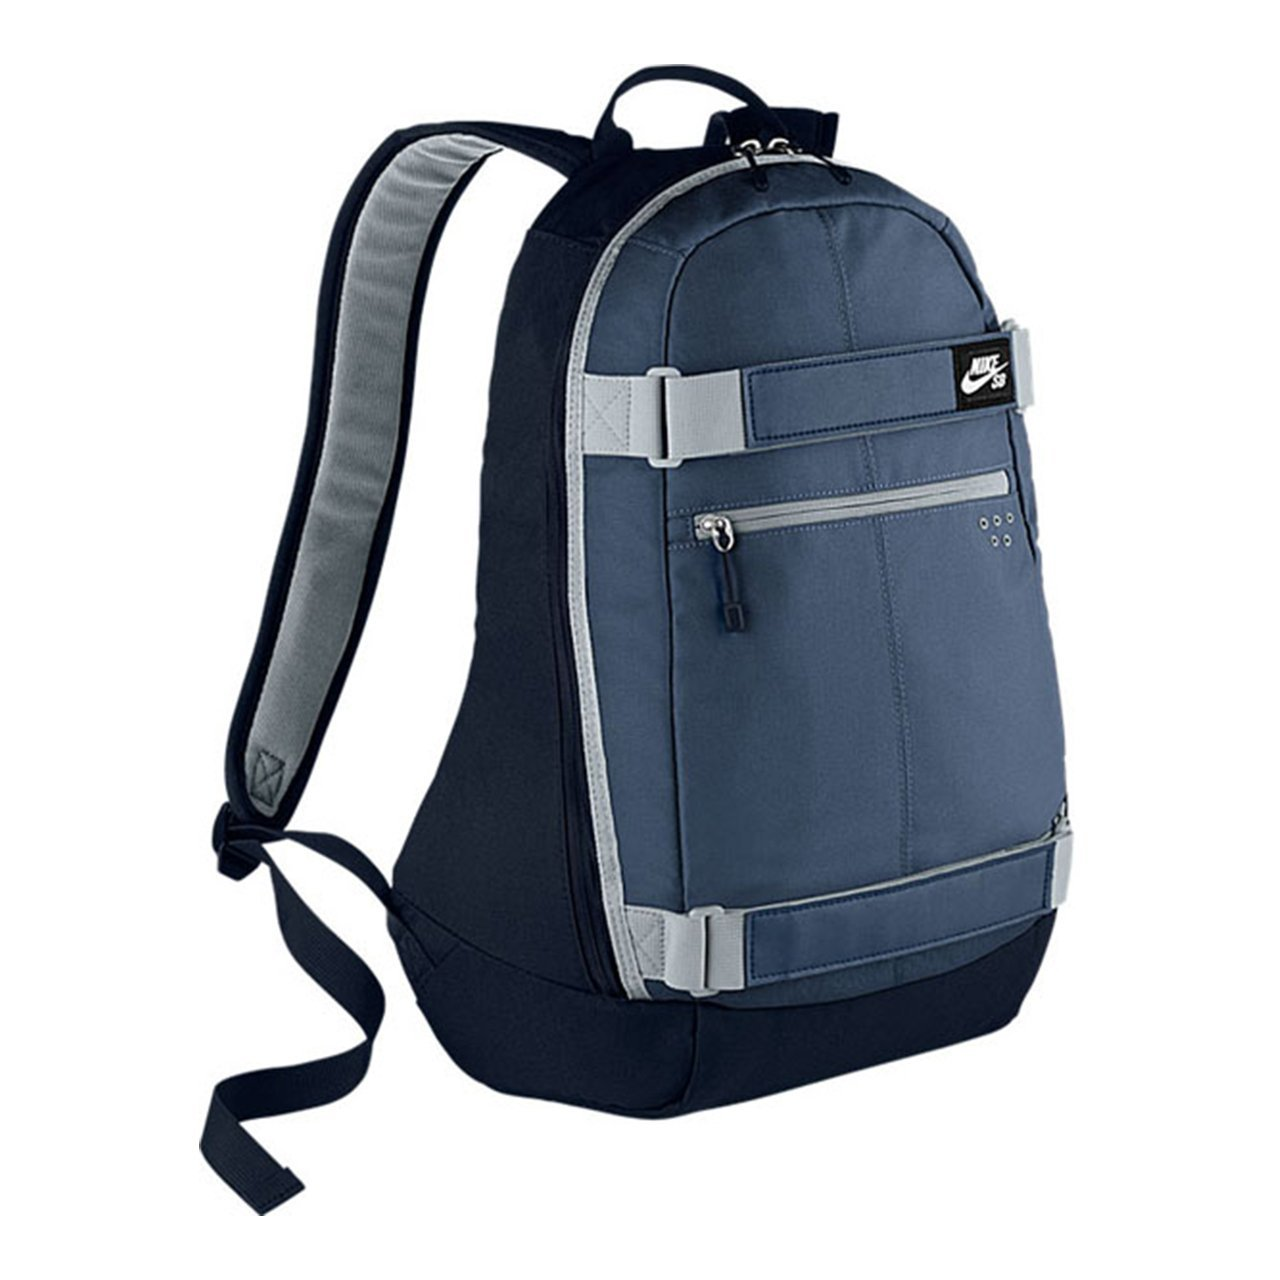 b87583494569 Buy Nike SB Embarca Backpack SQUADRON BLUE DKOBS (WLFGRY) in Cheap ...